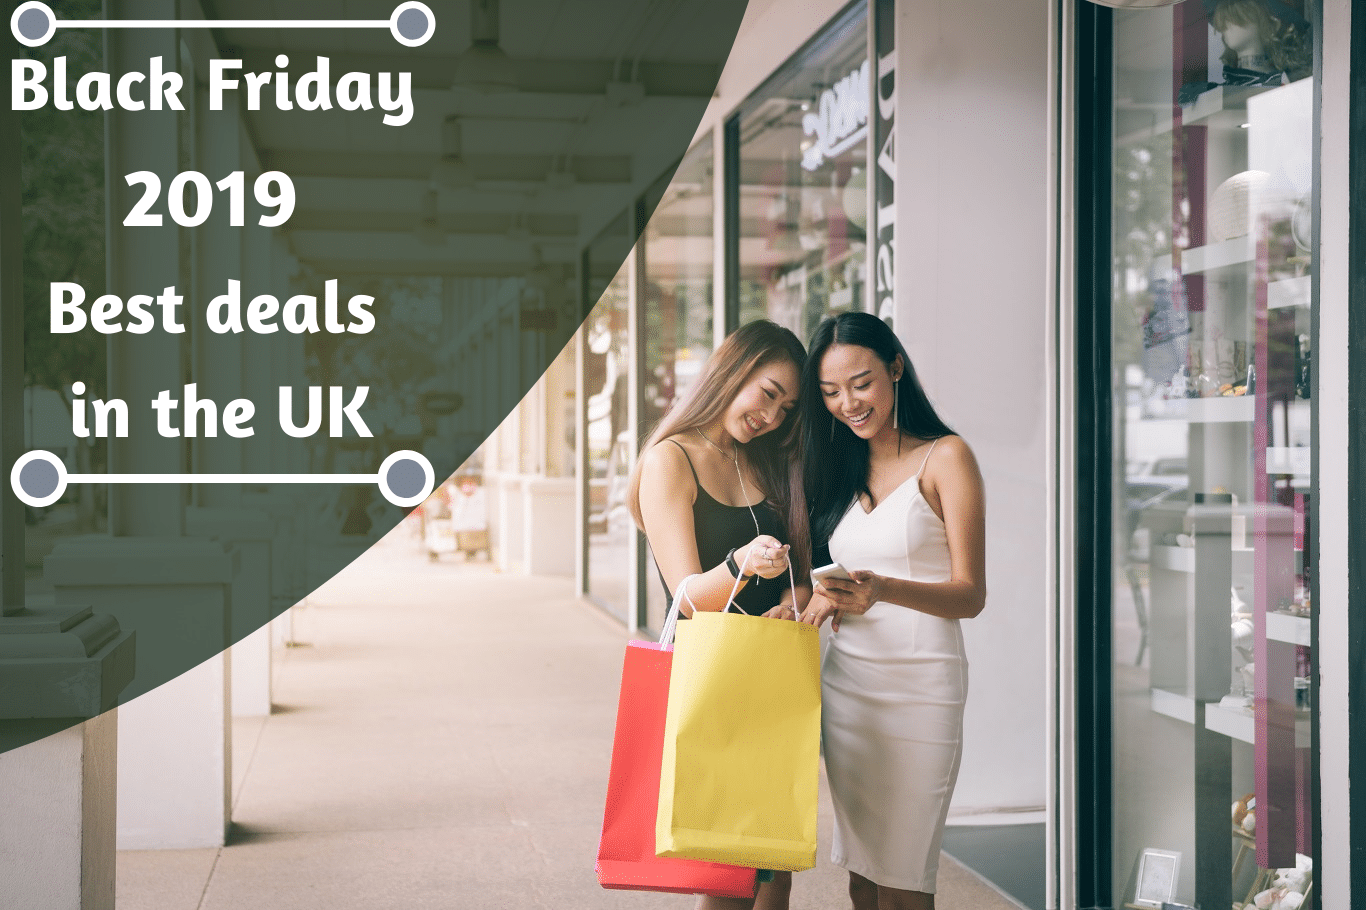 Black Friday 2019 Best deals in the UK